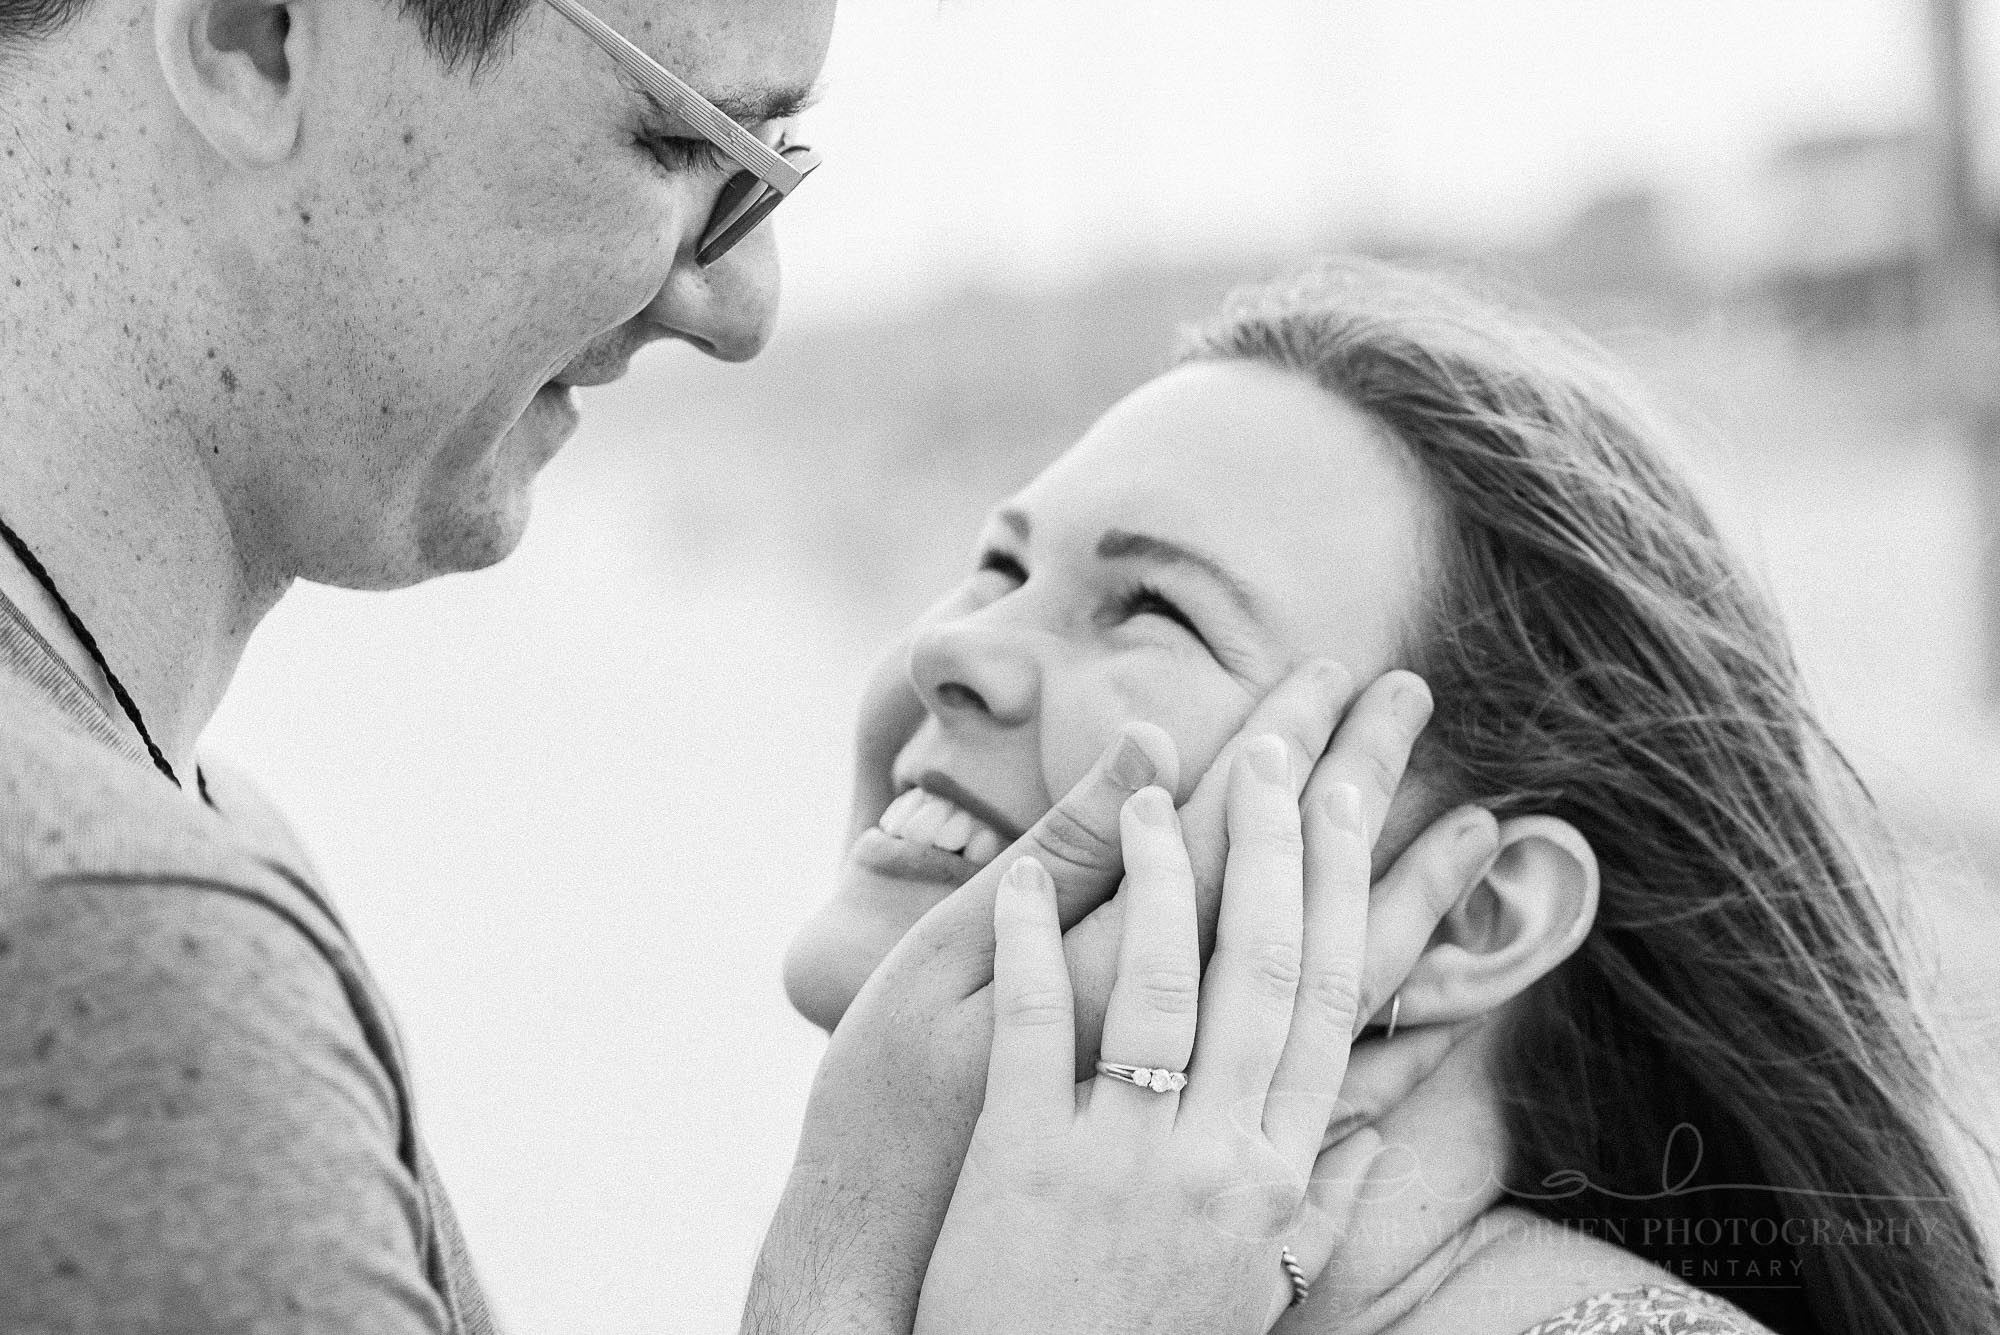 Sarah_Lorien_Photography_Engagement-15